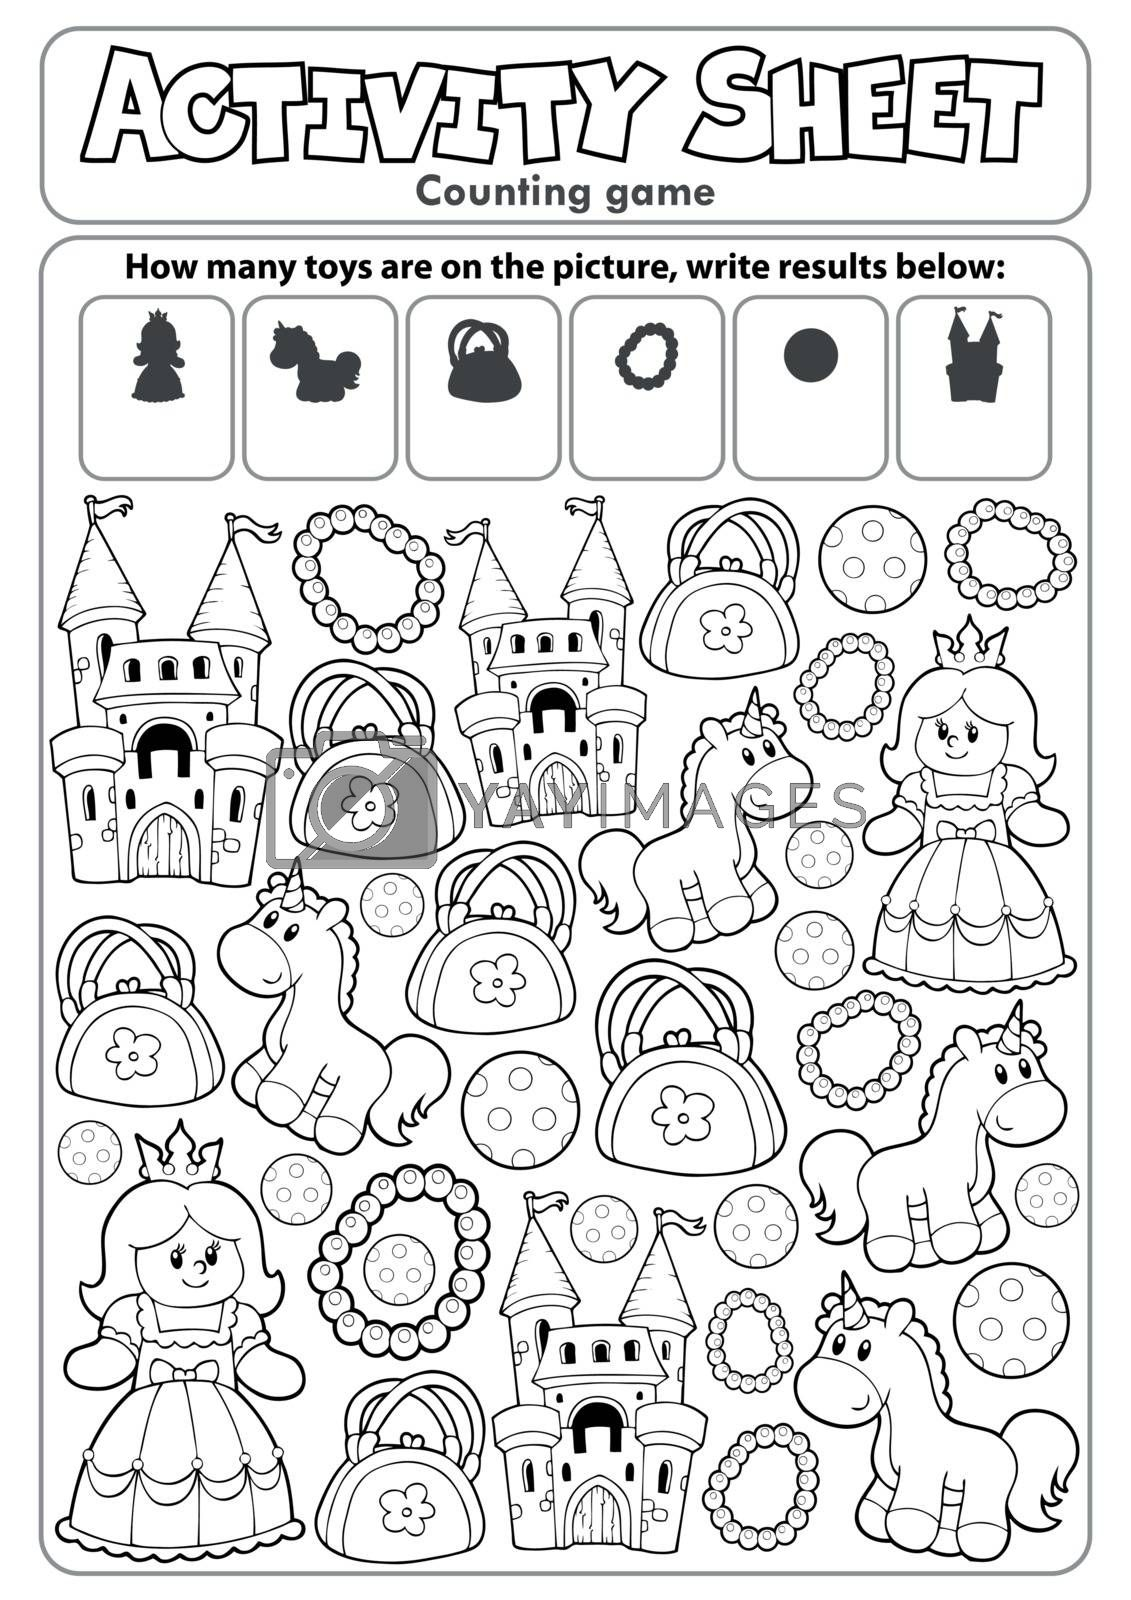 Activity sheet counting game 8 - eps10 vector illustration.